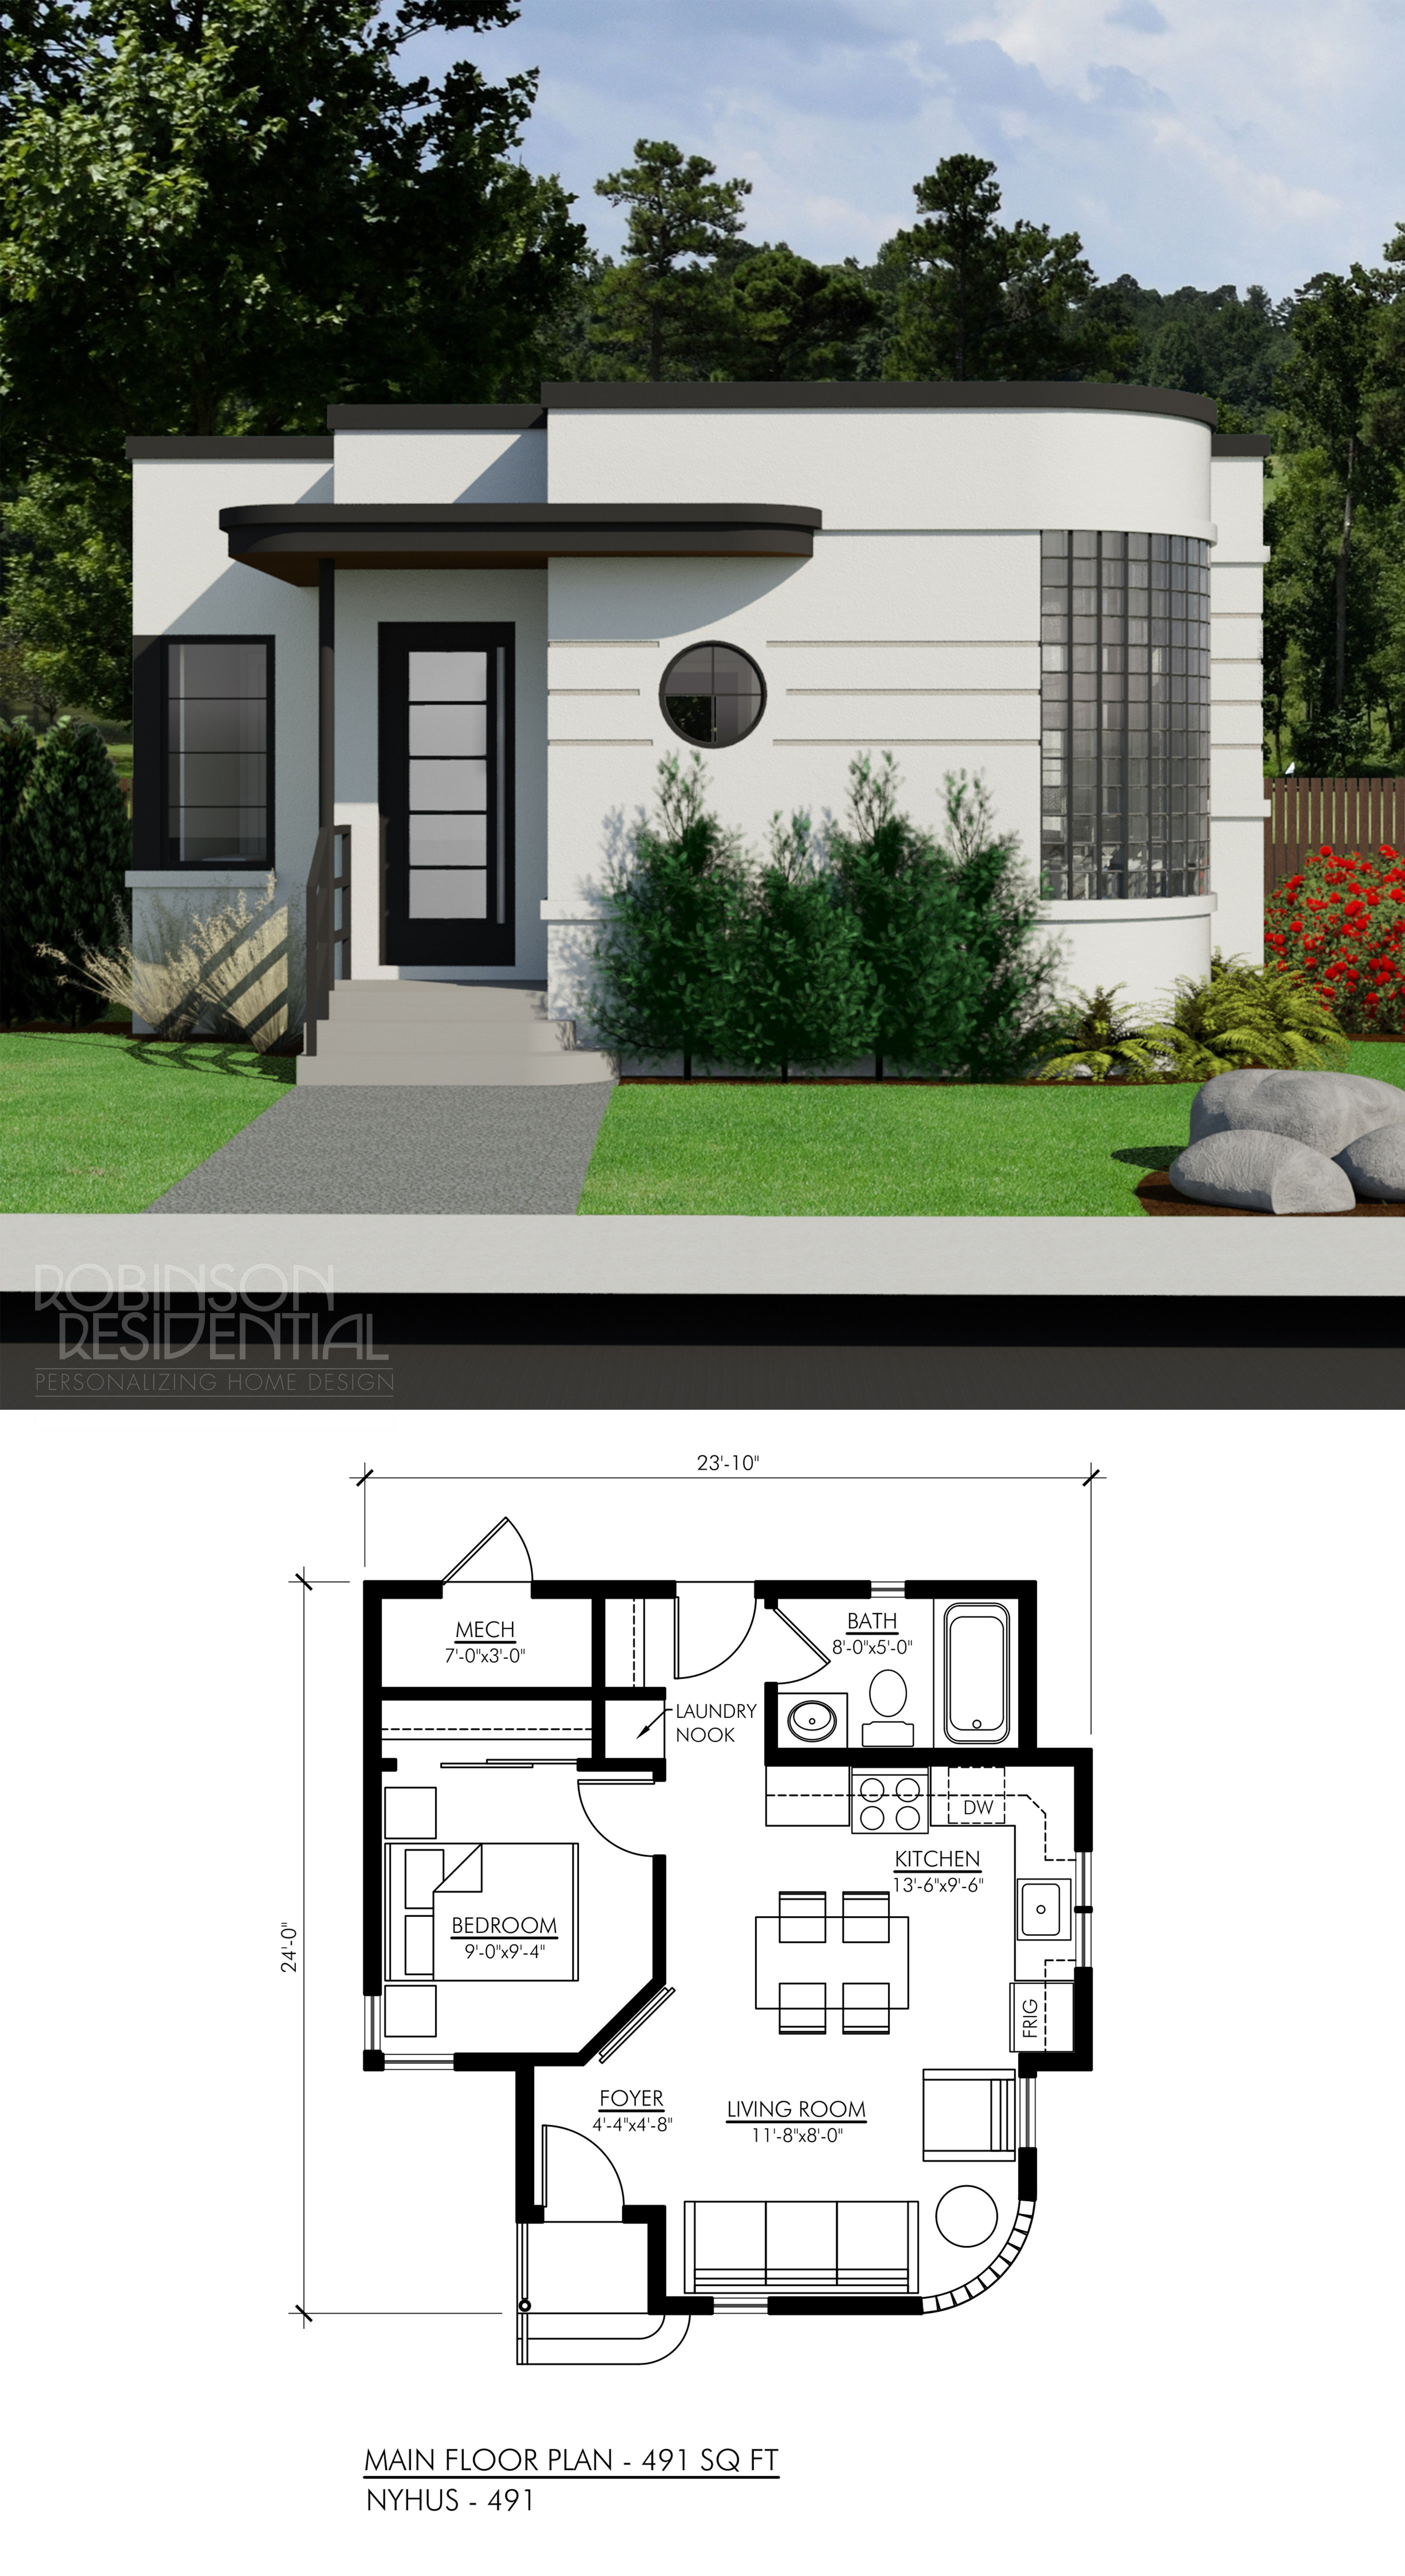 Small House Designs and Floor Plans New Contemporary Nyhus 491 In 2020